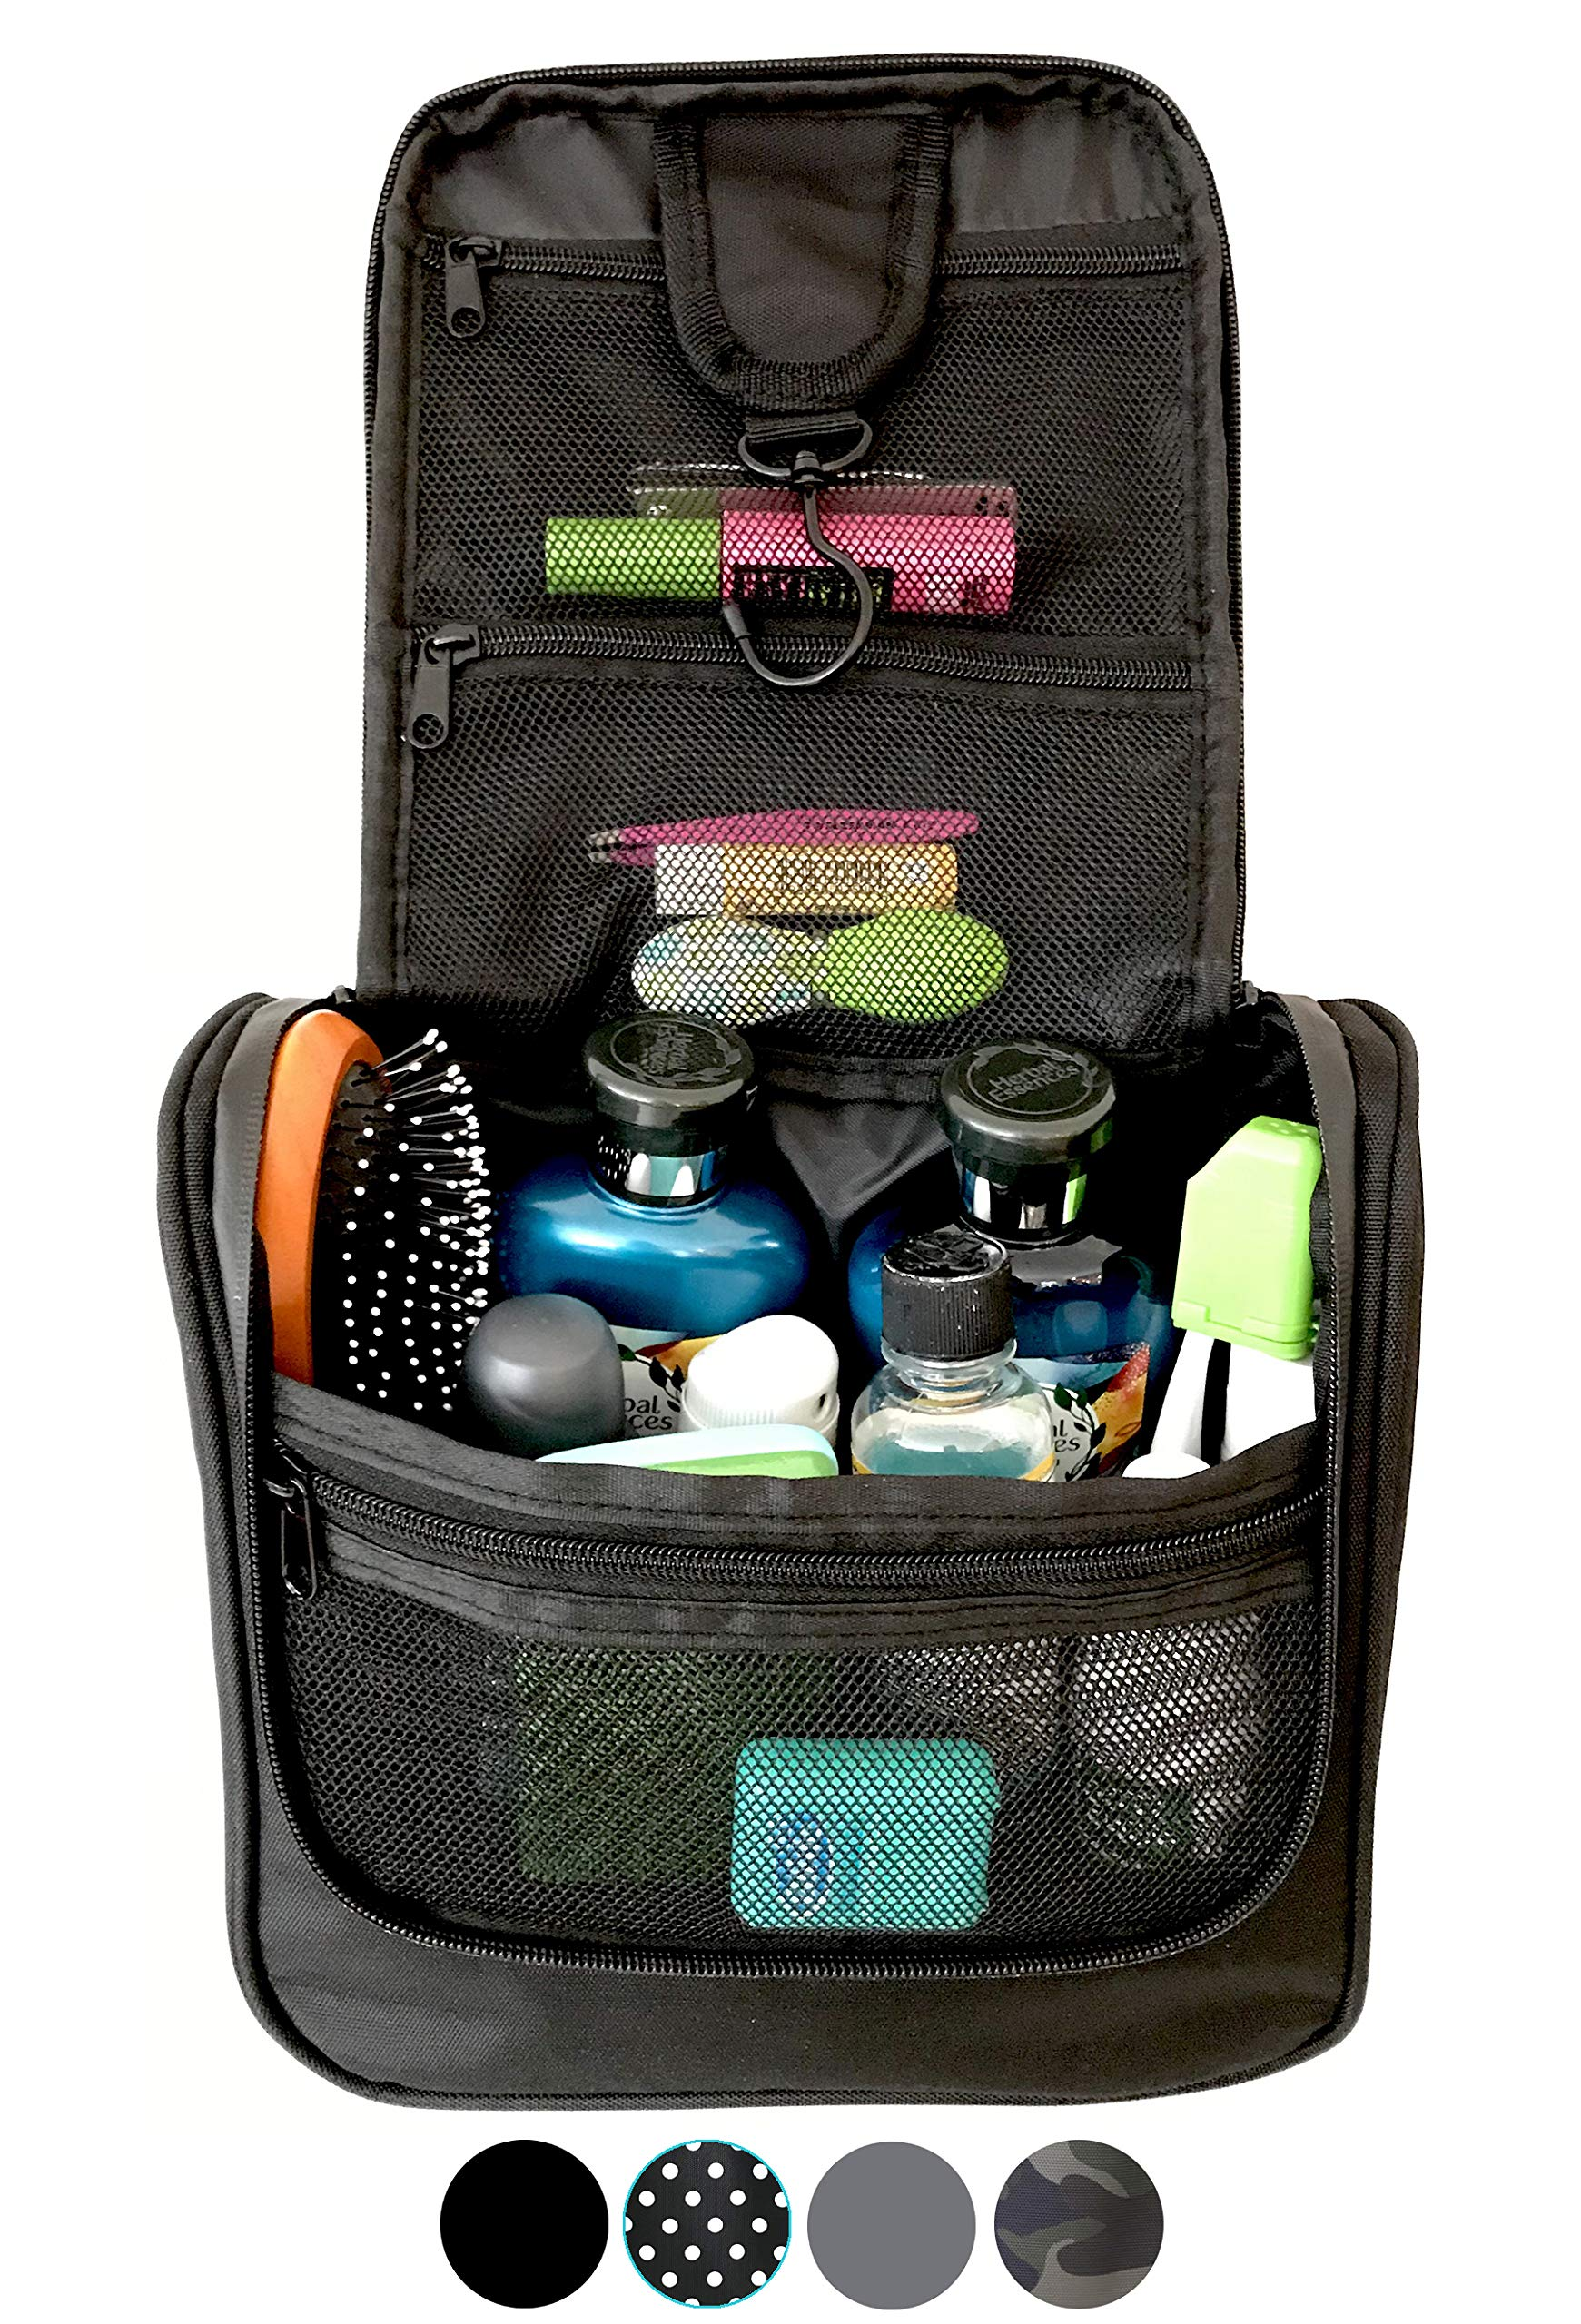 WAYFARER SUPPLY Hanging Toiletry Bag: Pack-it-flat Travel Kit, Black by Wayfarer Supply Co.